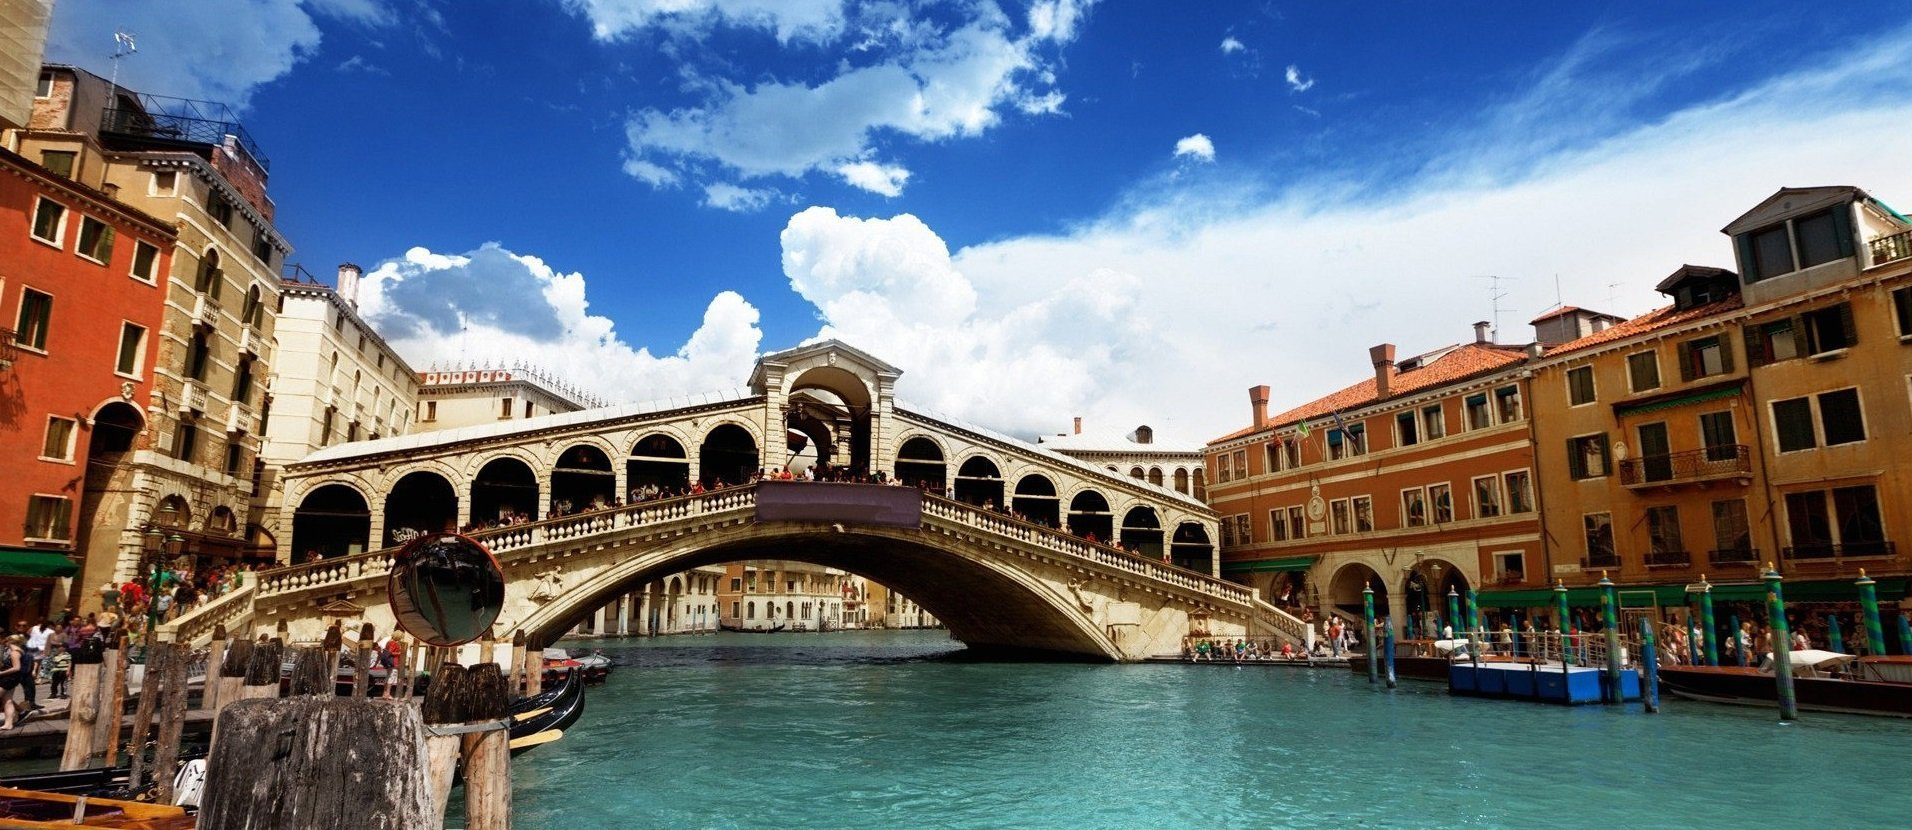 The Rialto Bridge, one of the city's most famous landmarks